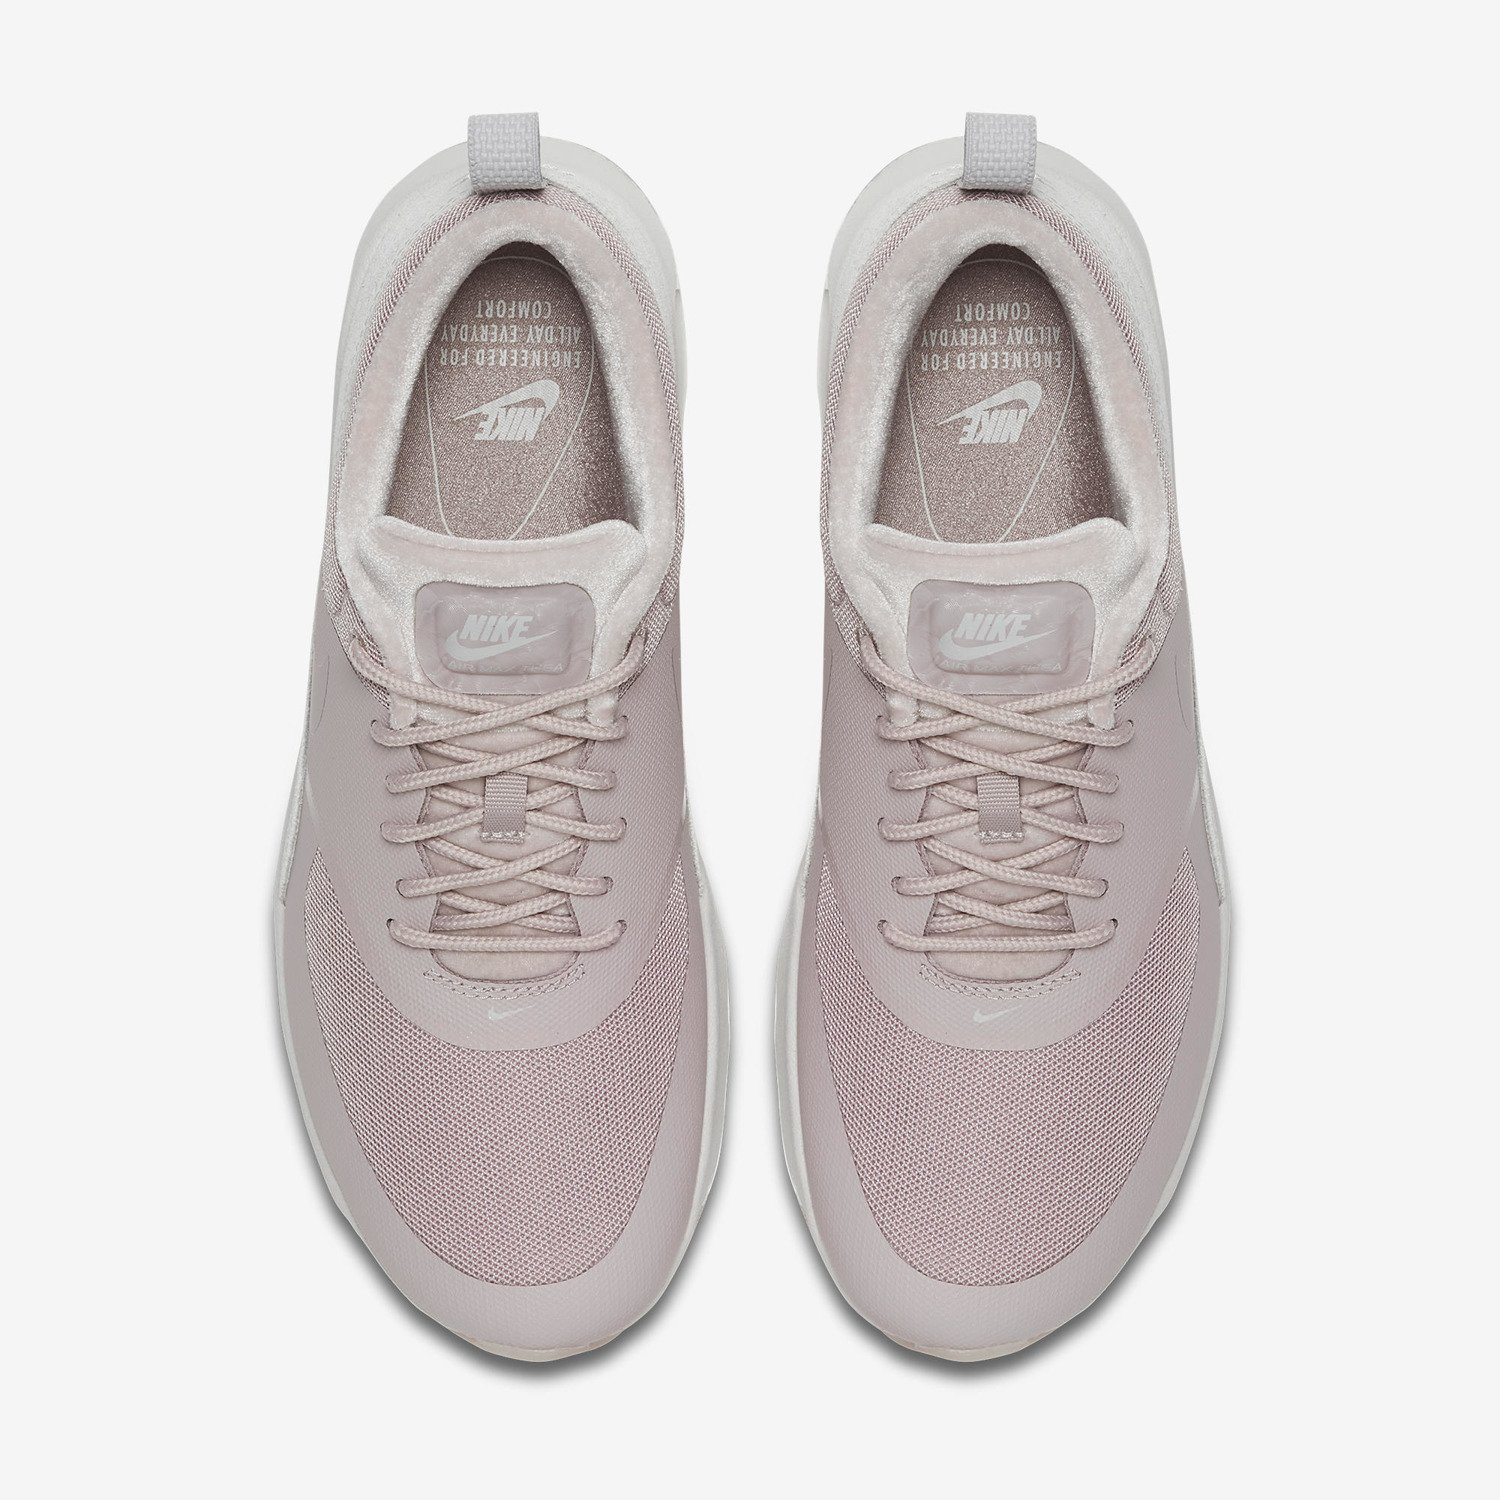 Buty damskie Nike Air Max Thea LX Particle Rose/Vast Grey 881203 600